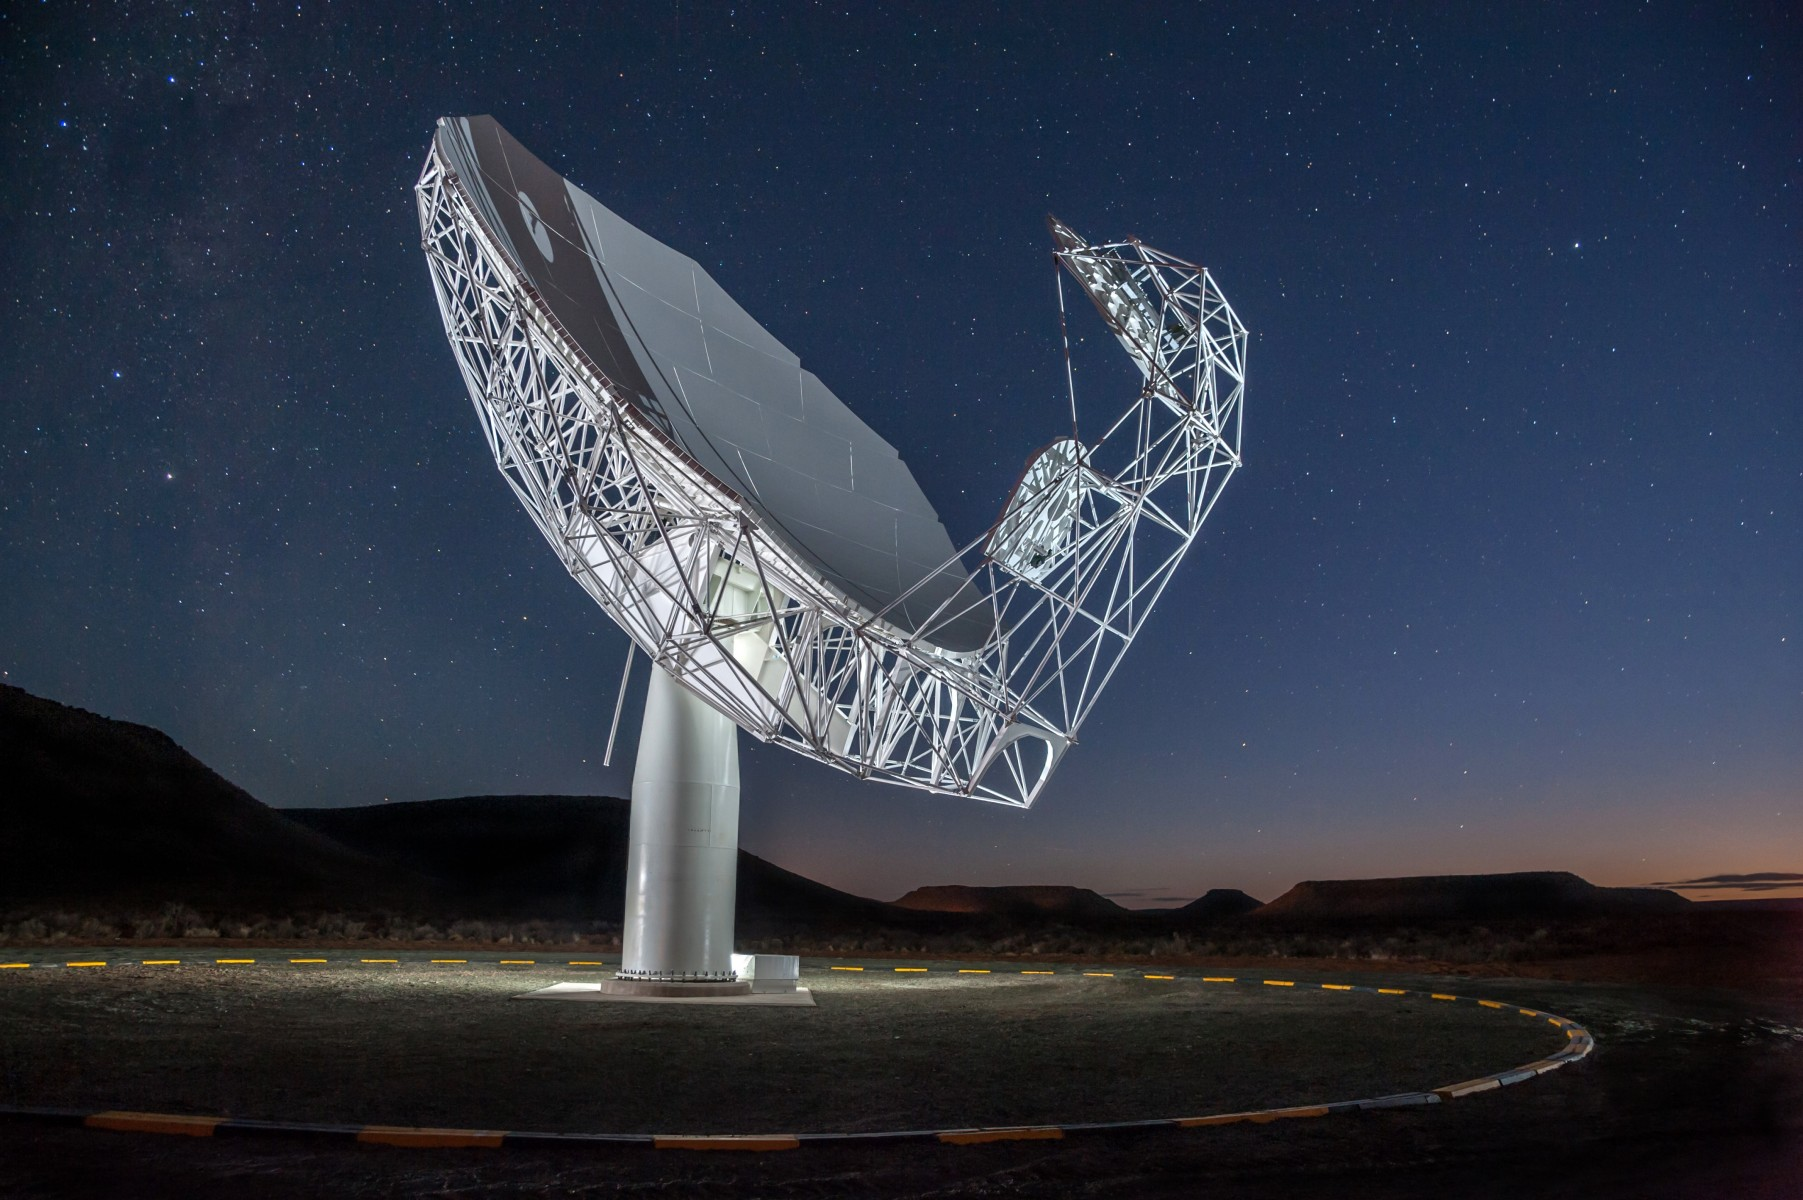 A night view of a MeerKAT antenna